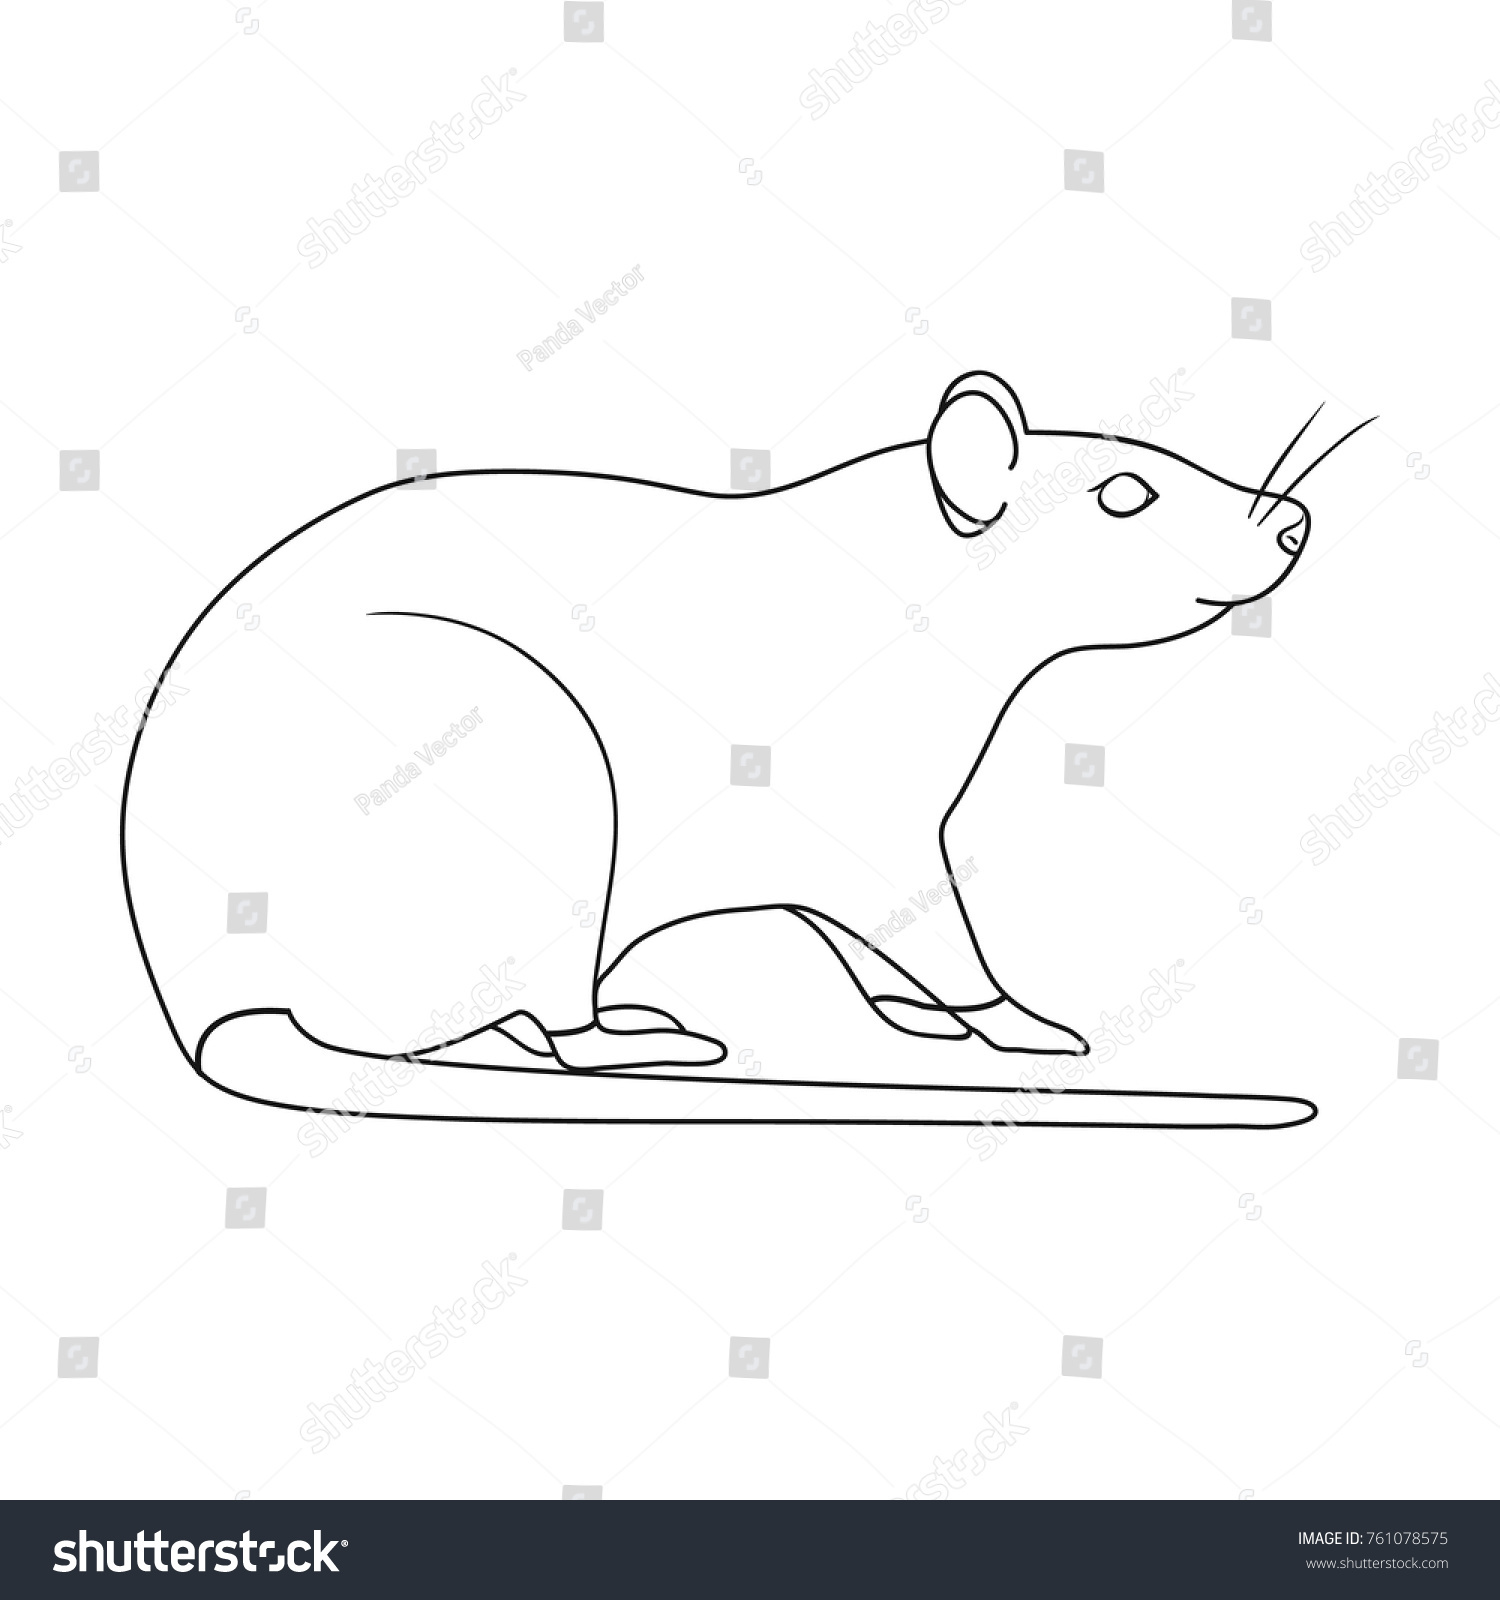 rodent rat single icon in outline style for designpest control service vector symbol stock